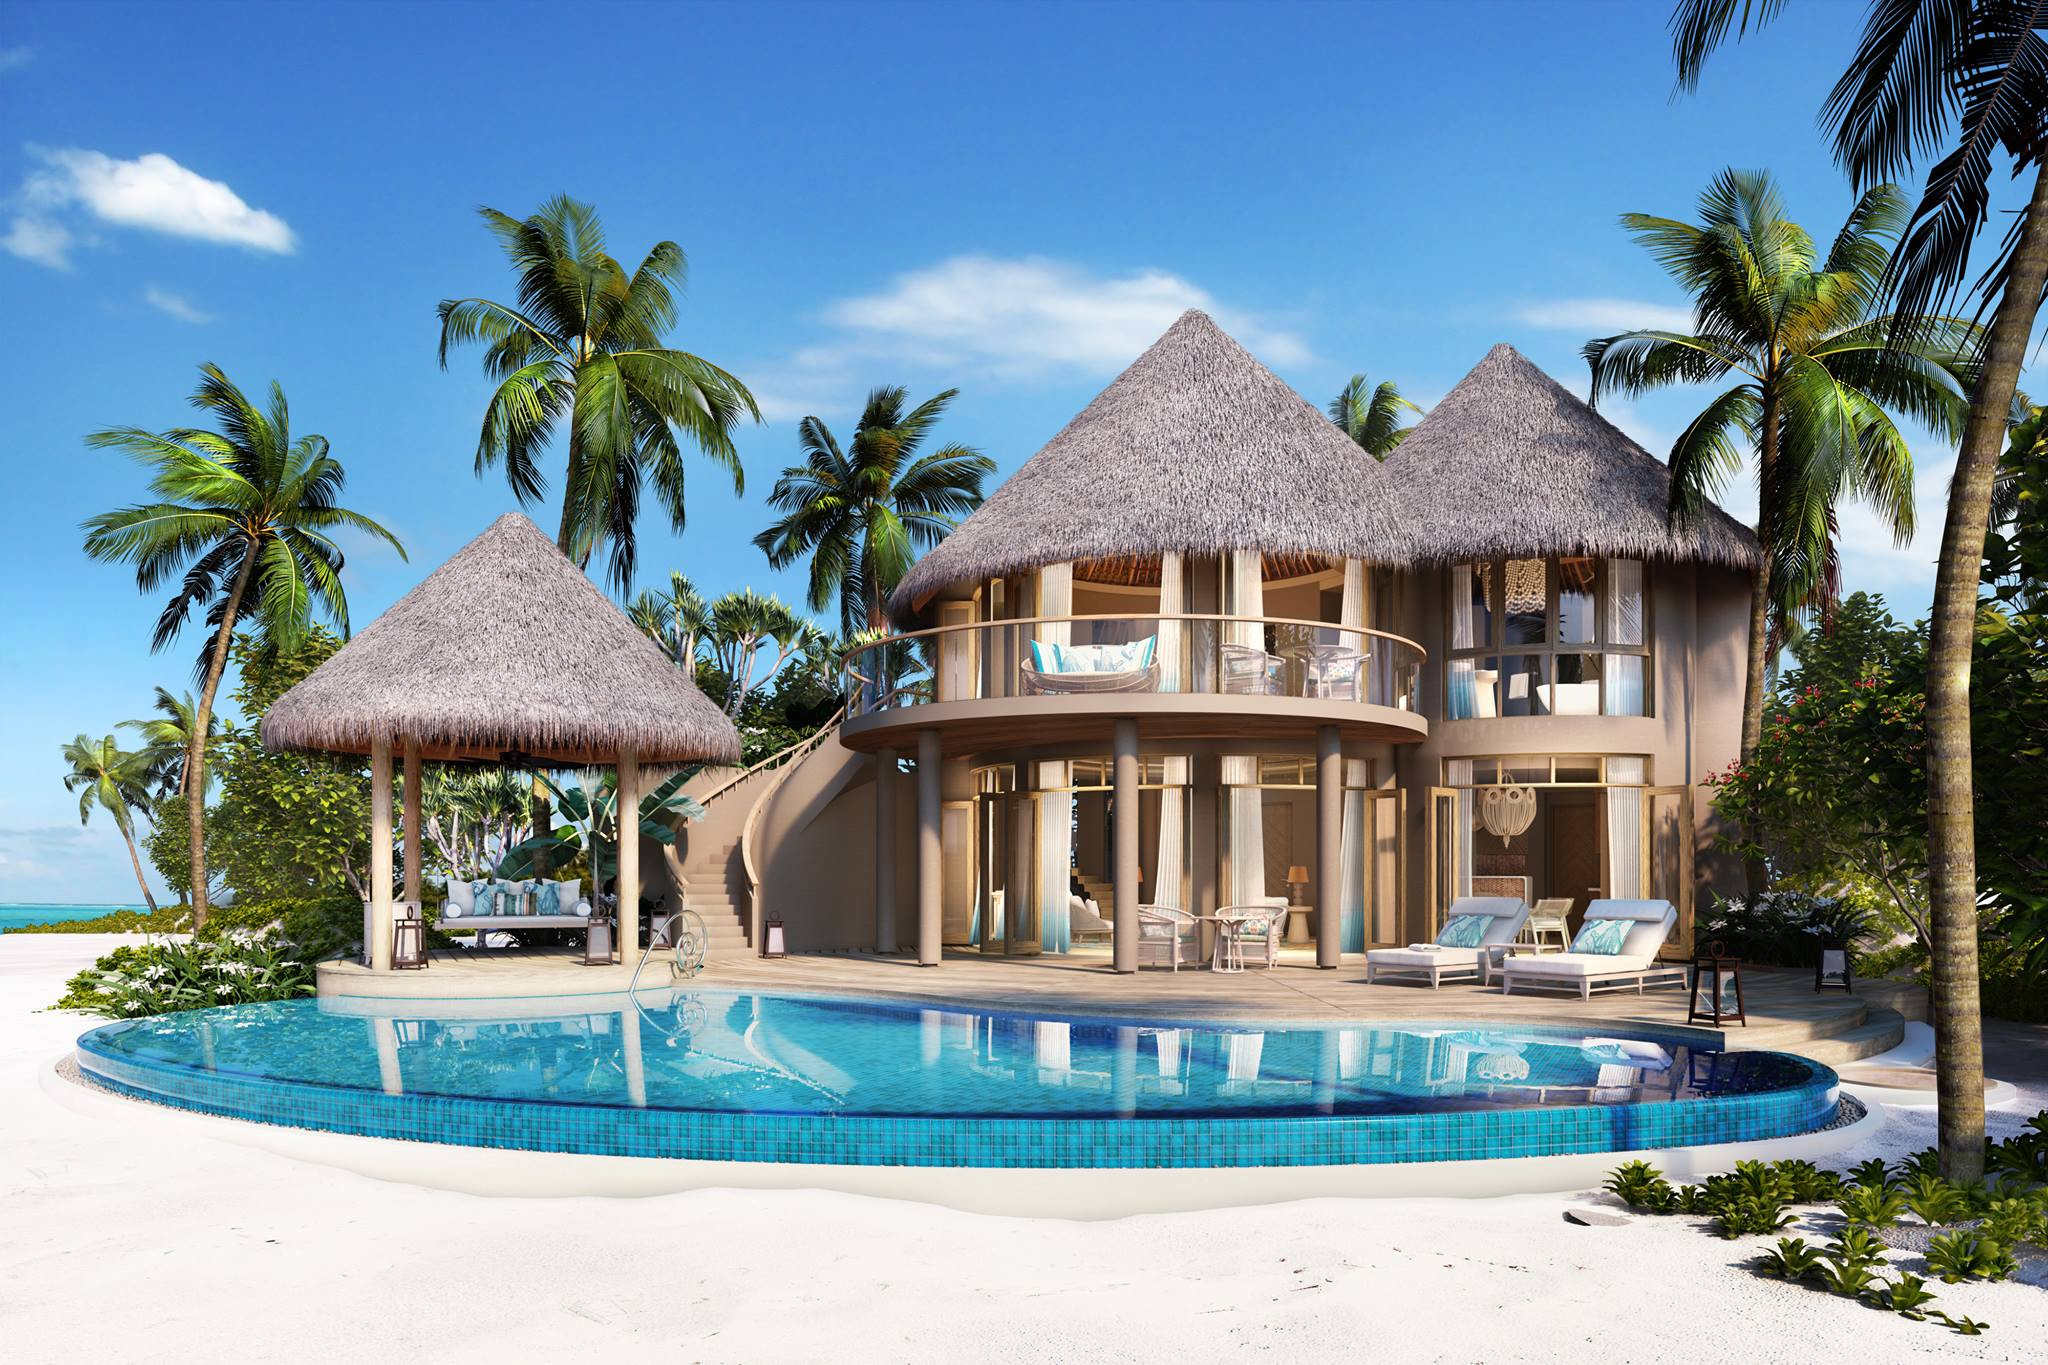 3 Resorts crowned World's Best Luxury Hotels